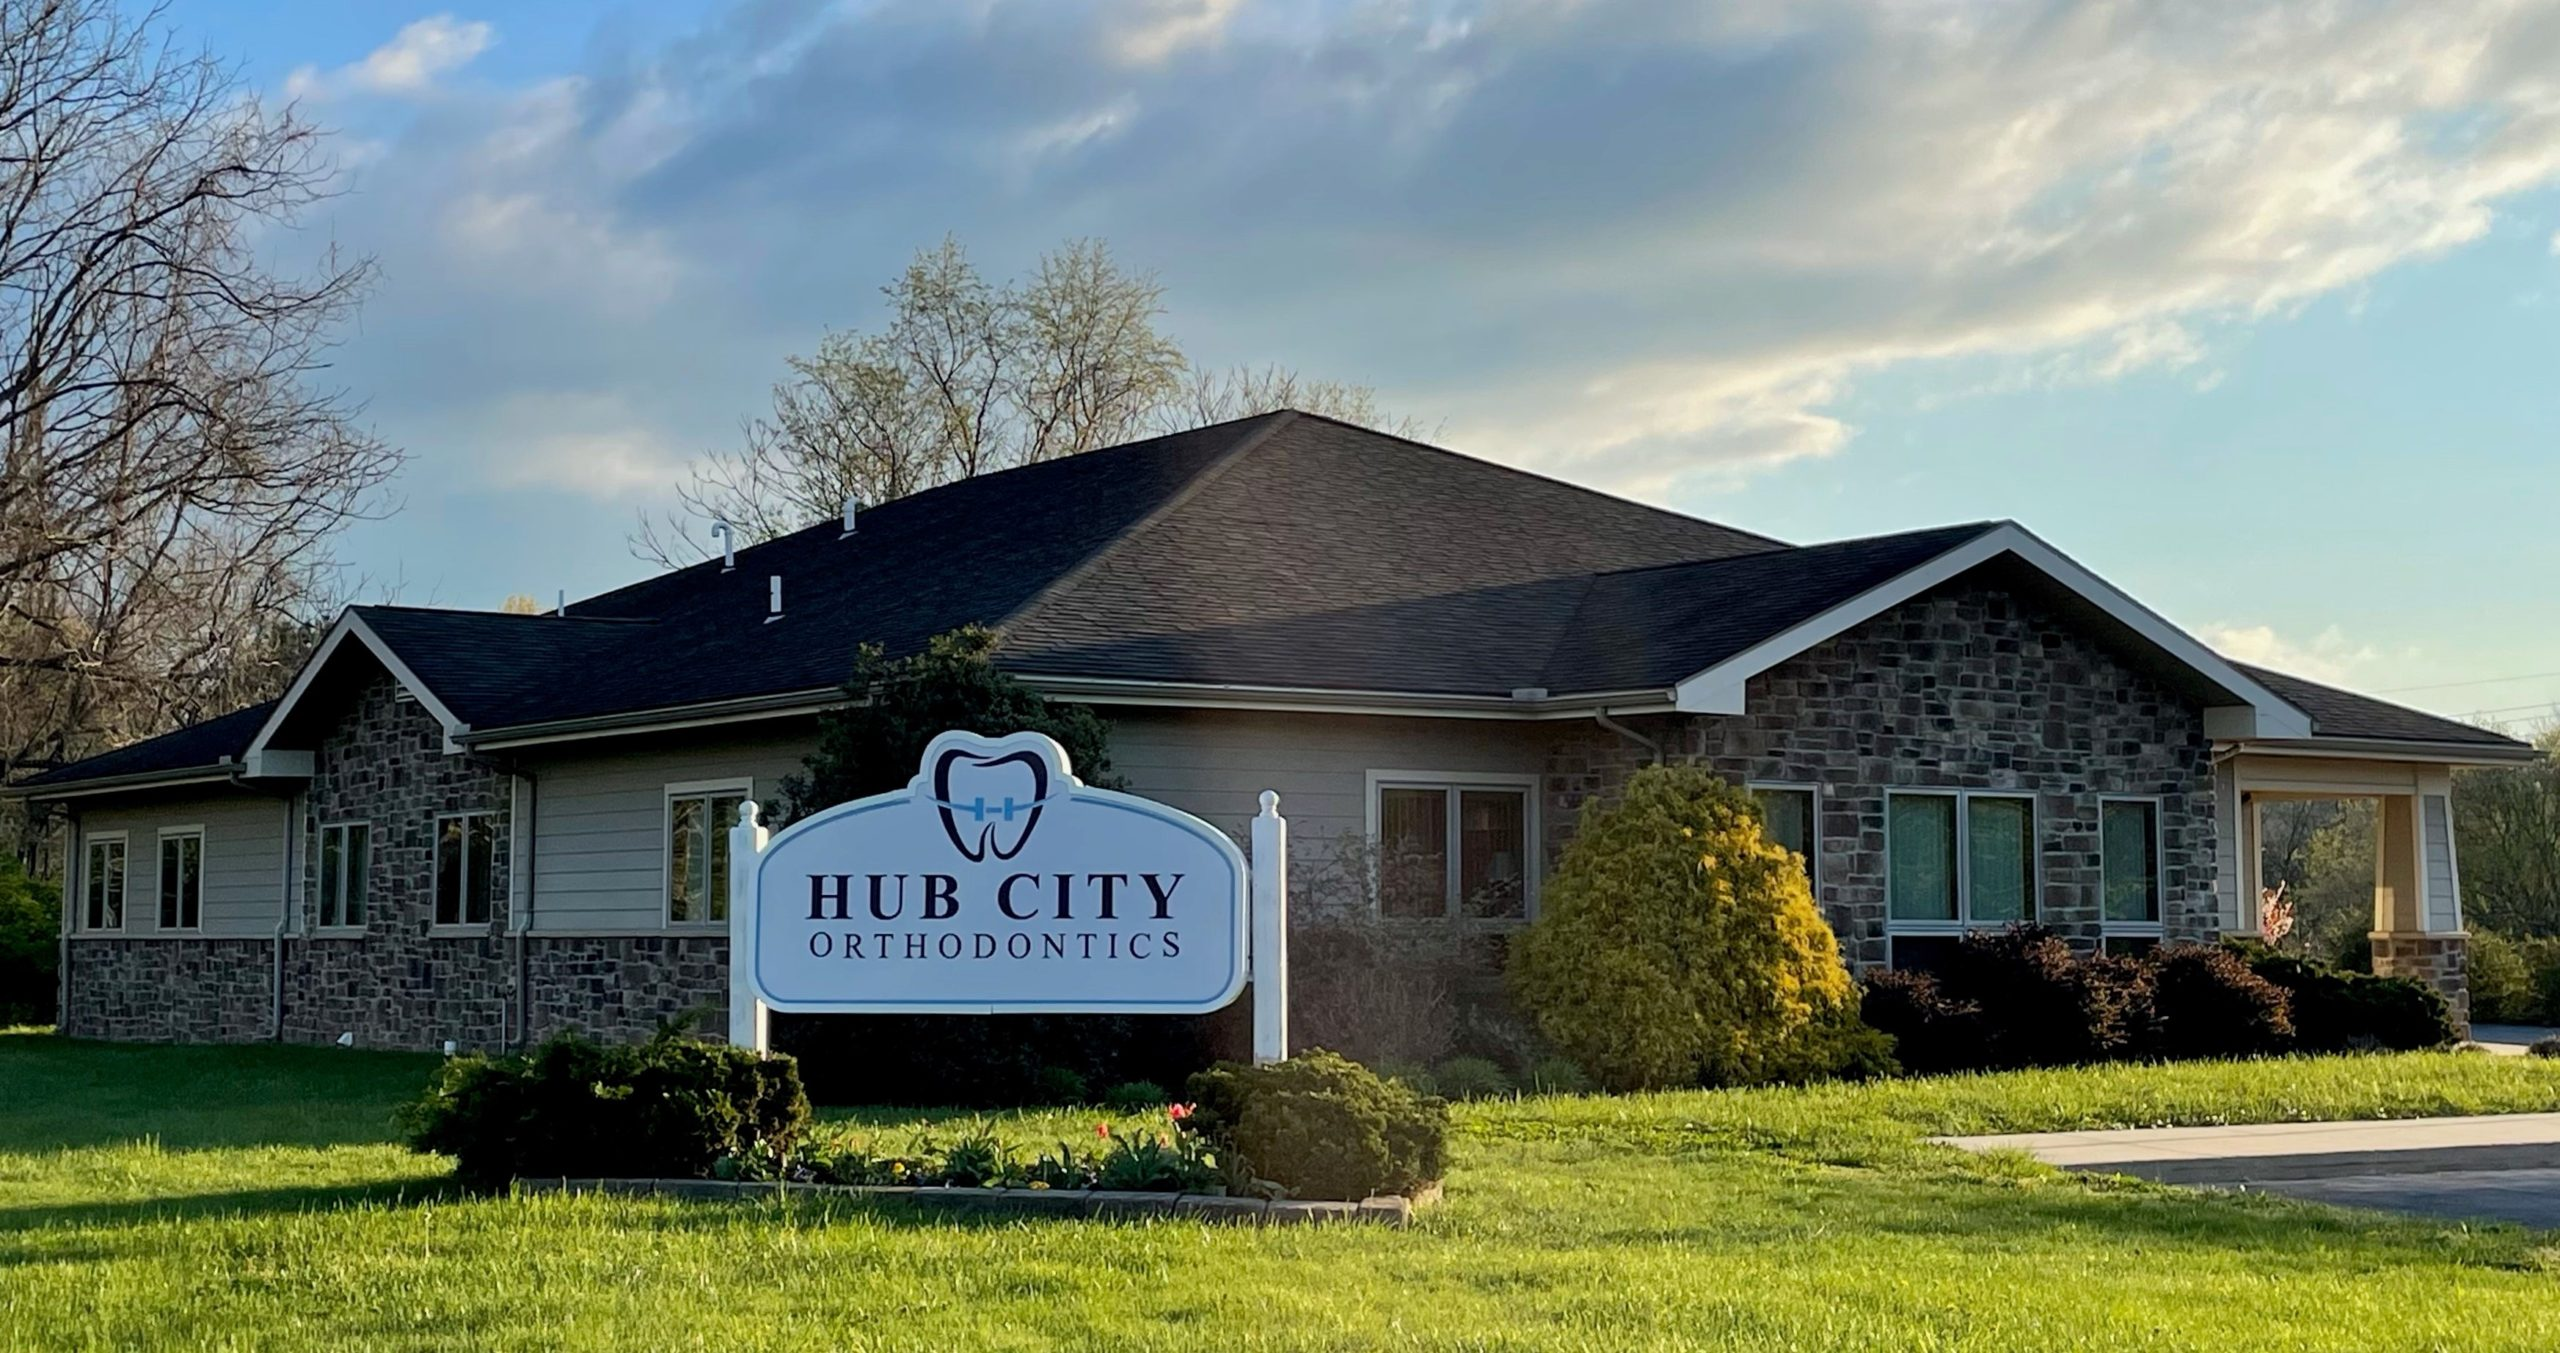 Picture of Hub City Orthodontics